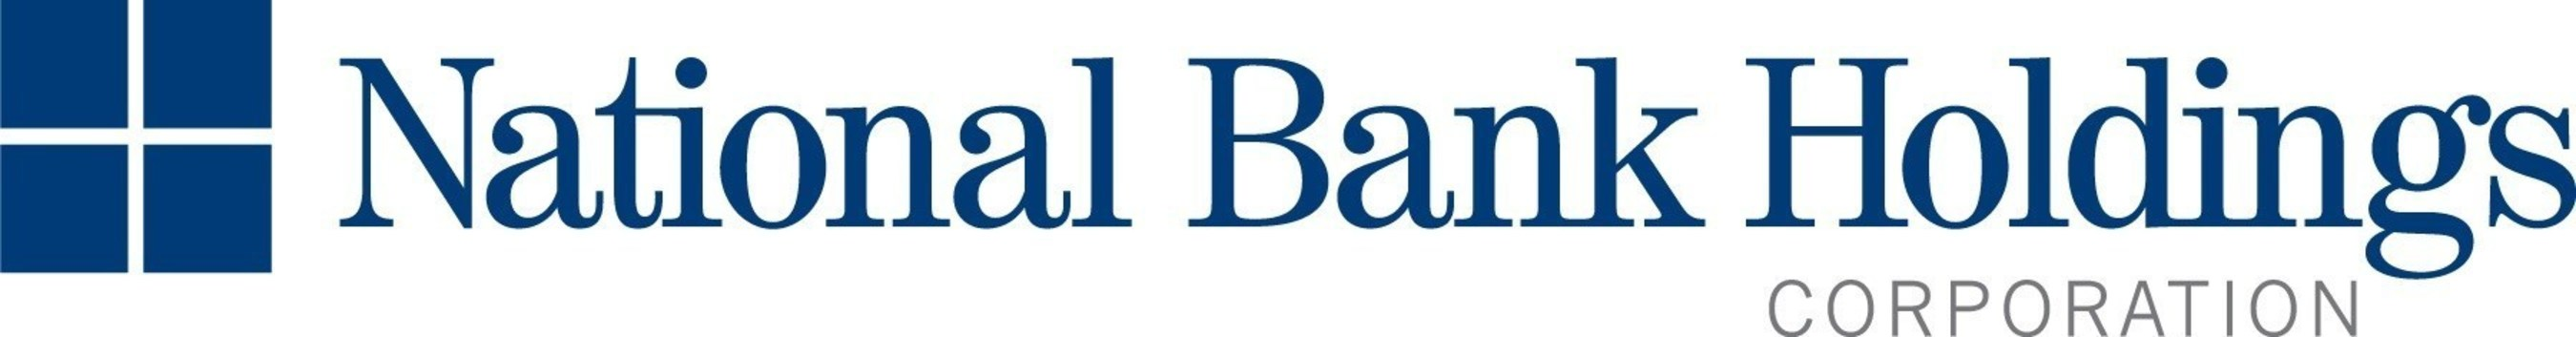 National Bank Holdings Corporation Logo